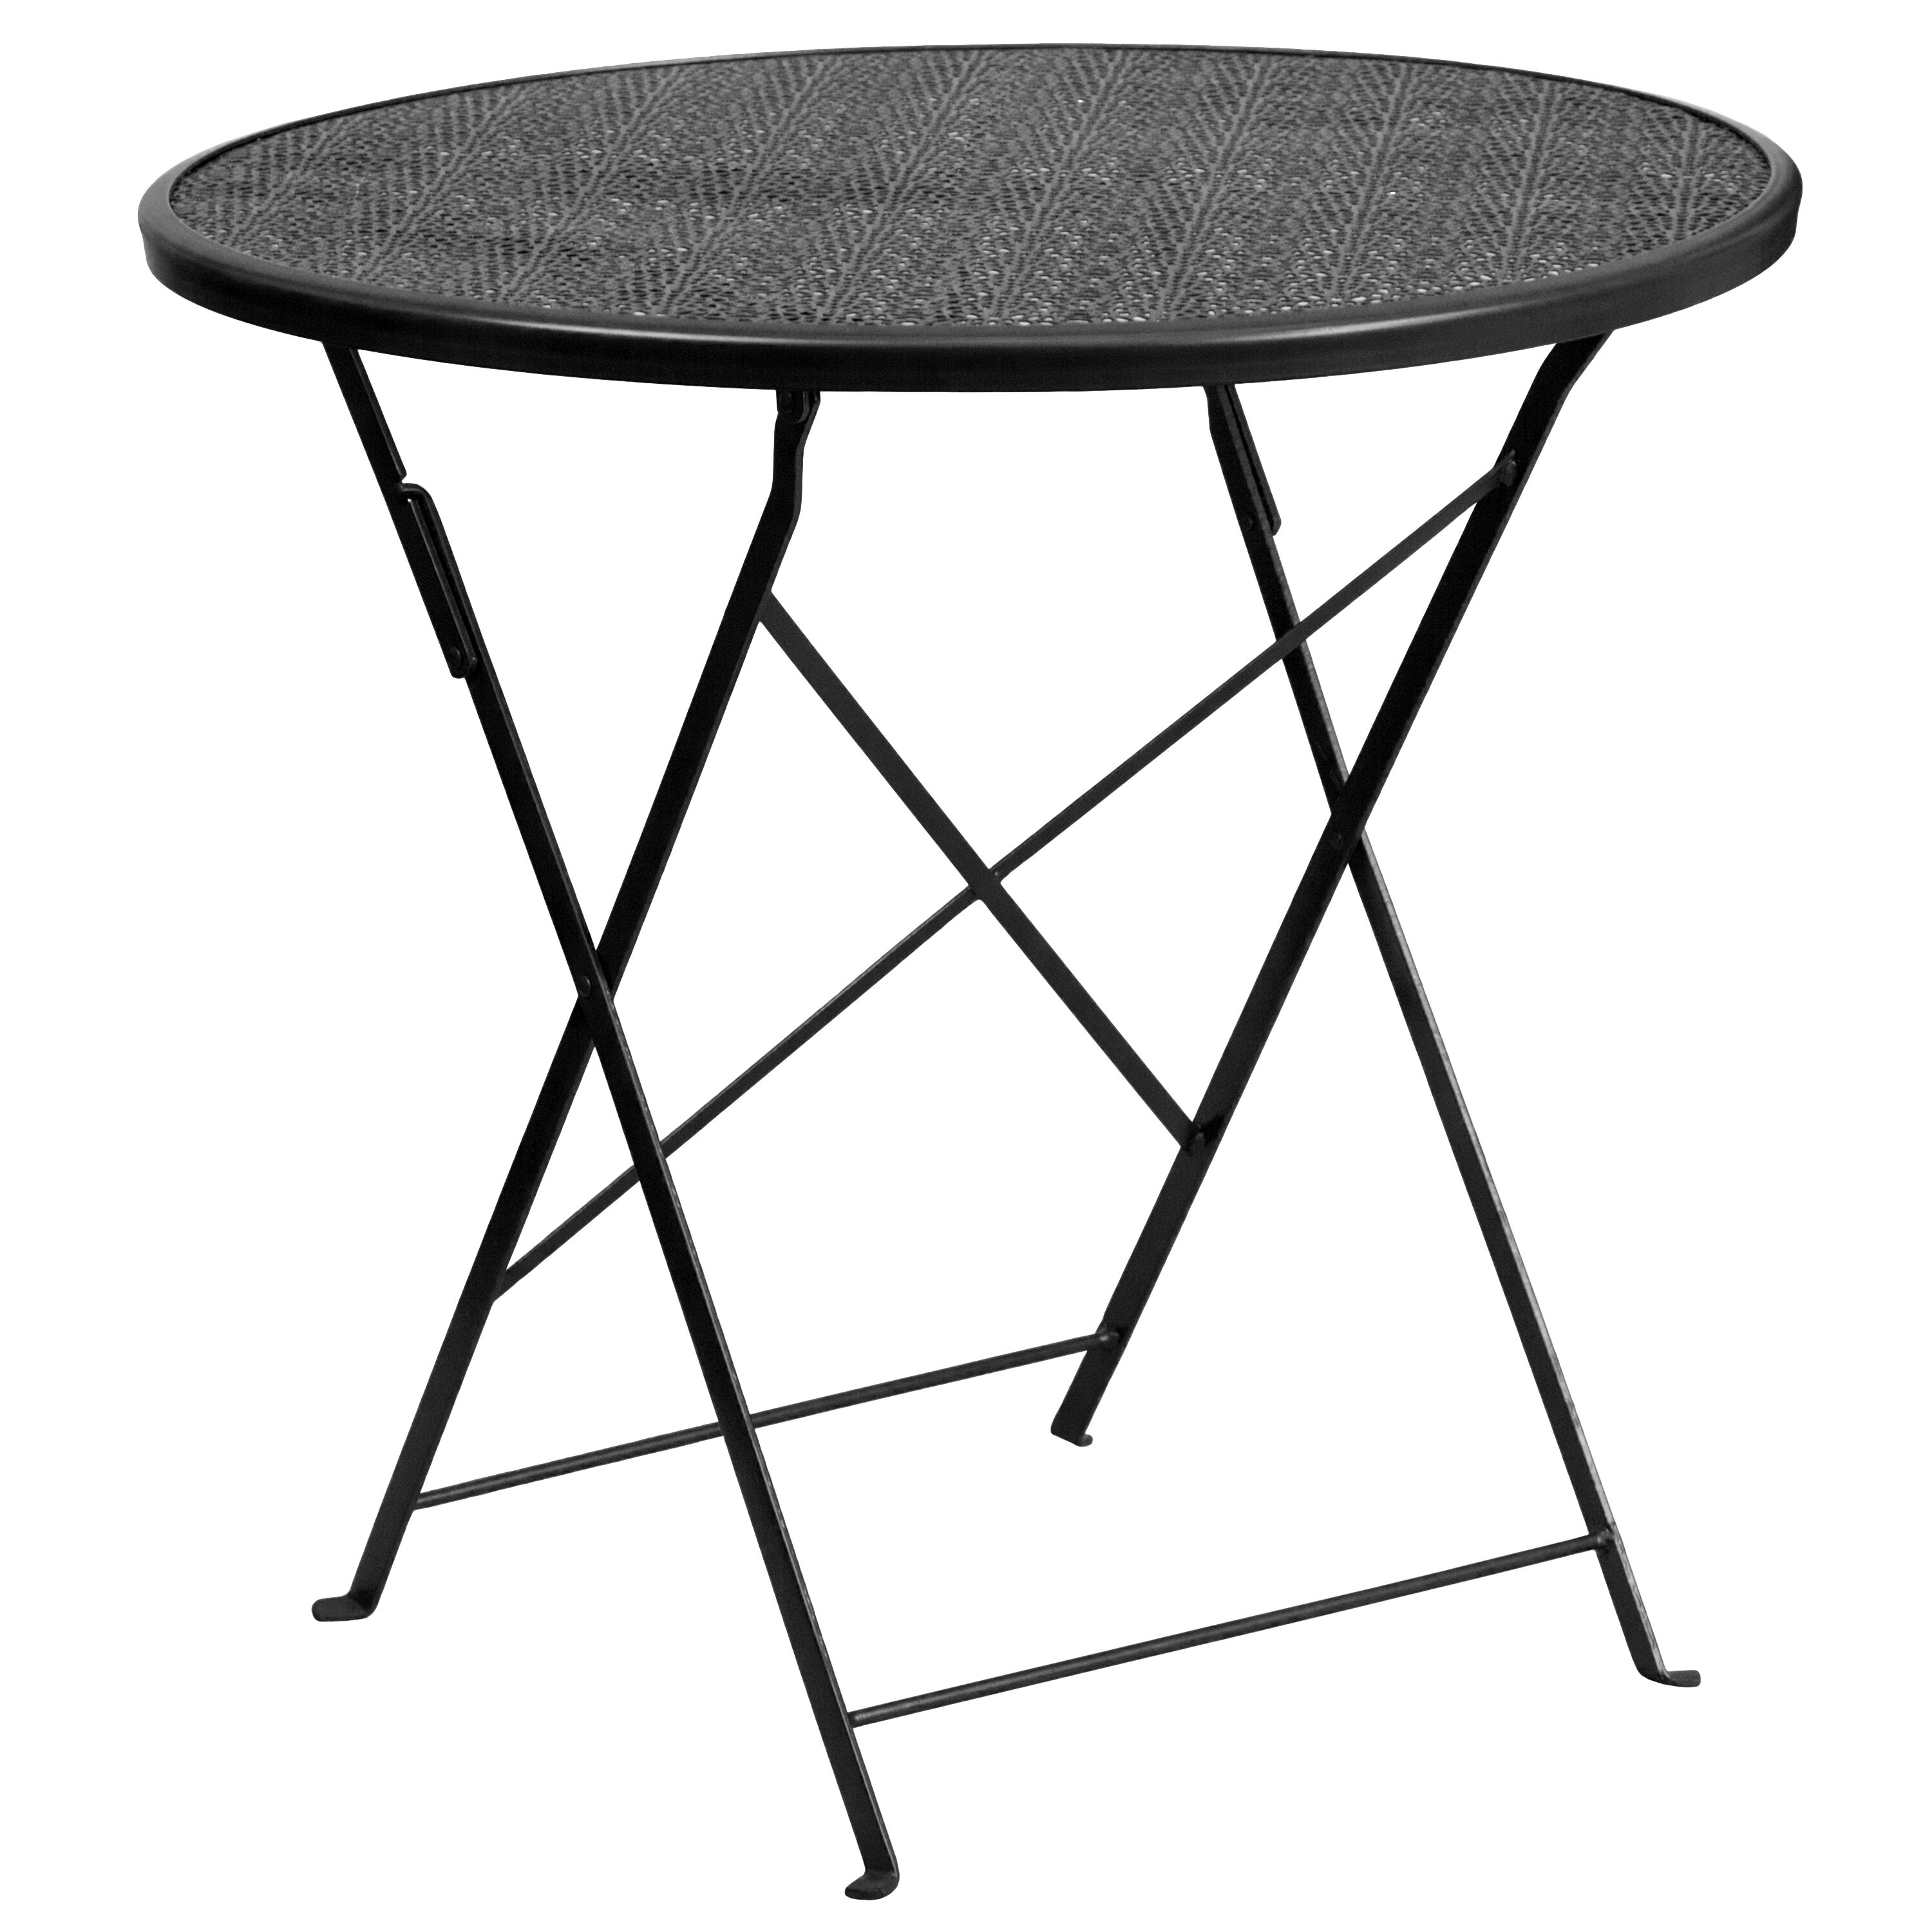 ... Our 30u0027u0027 Round Black Indoor Outdoor Steel Folding Patio Table Is On Sale